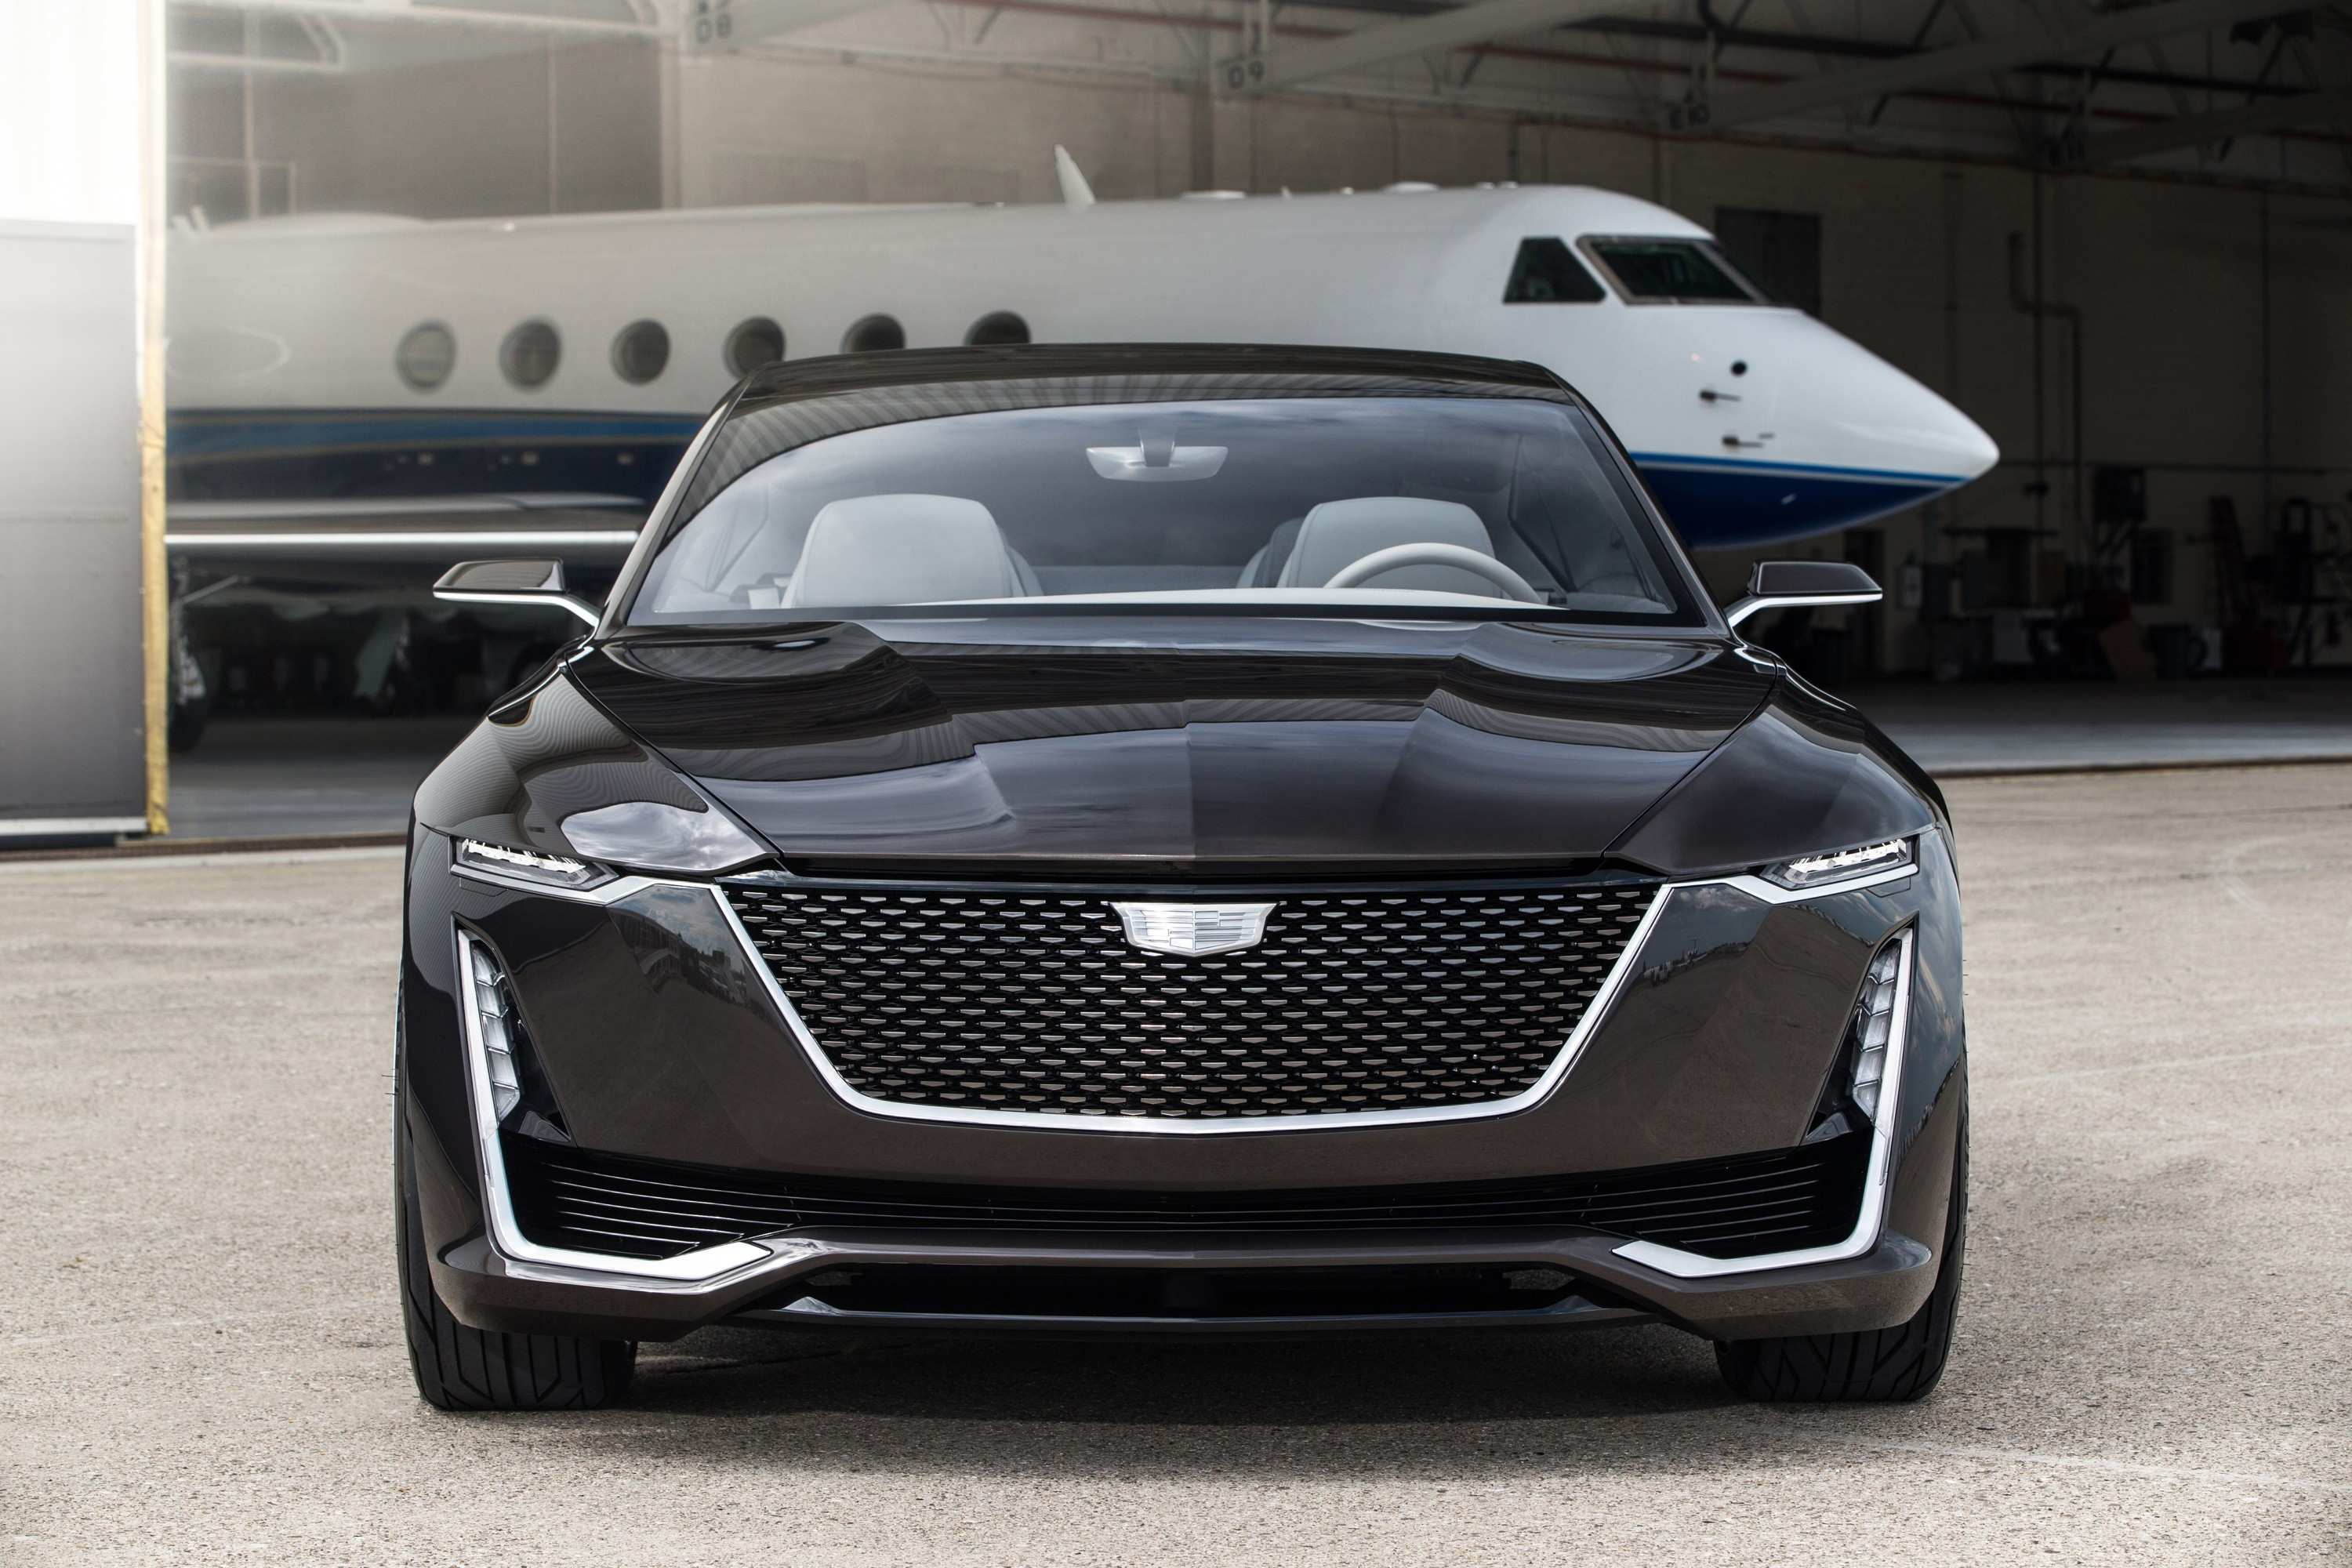 62 The Best 2020 Cadillac Deville Spesification